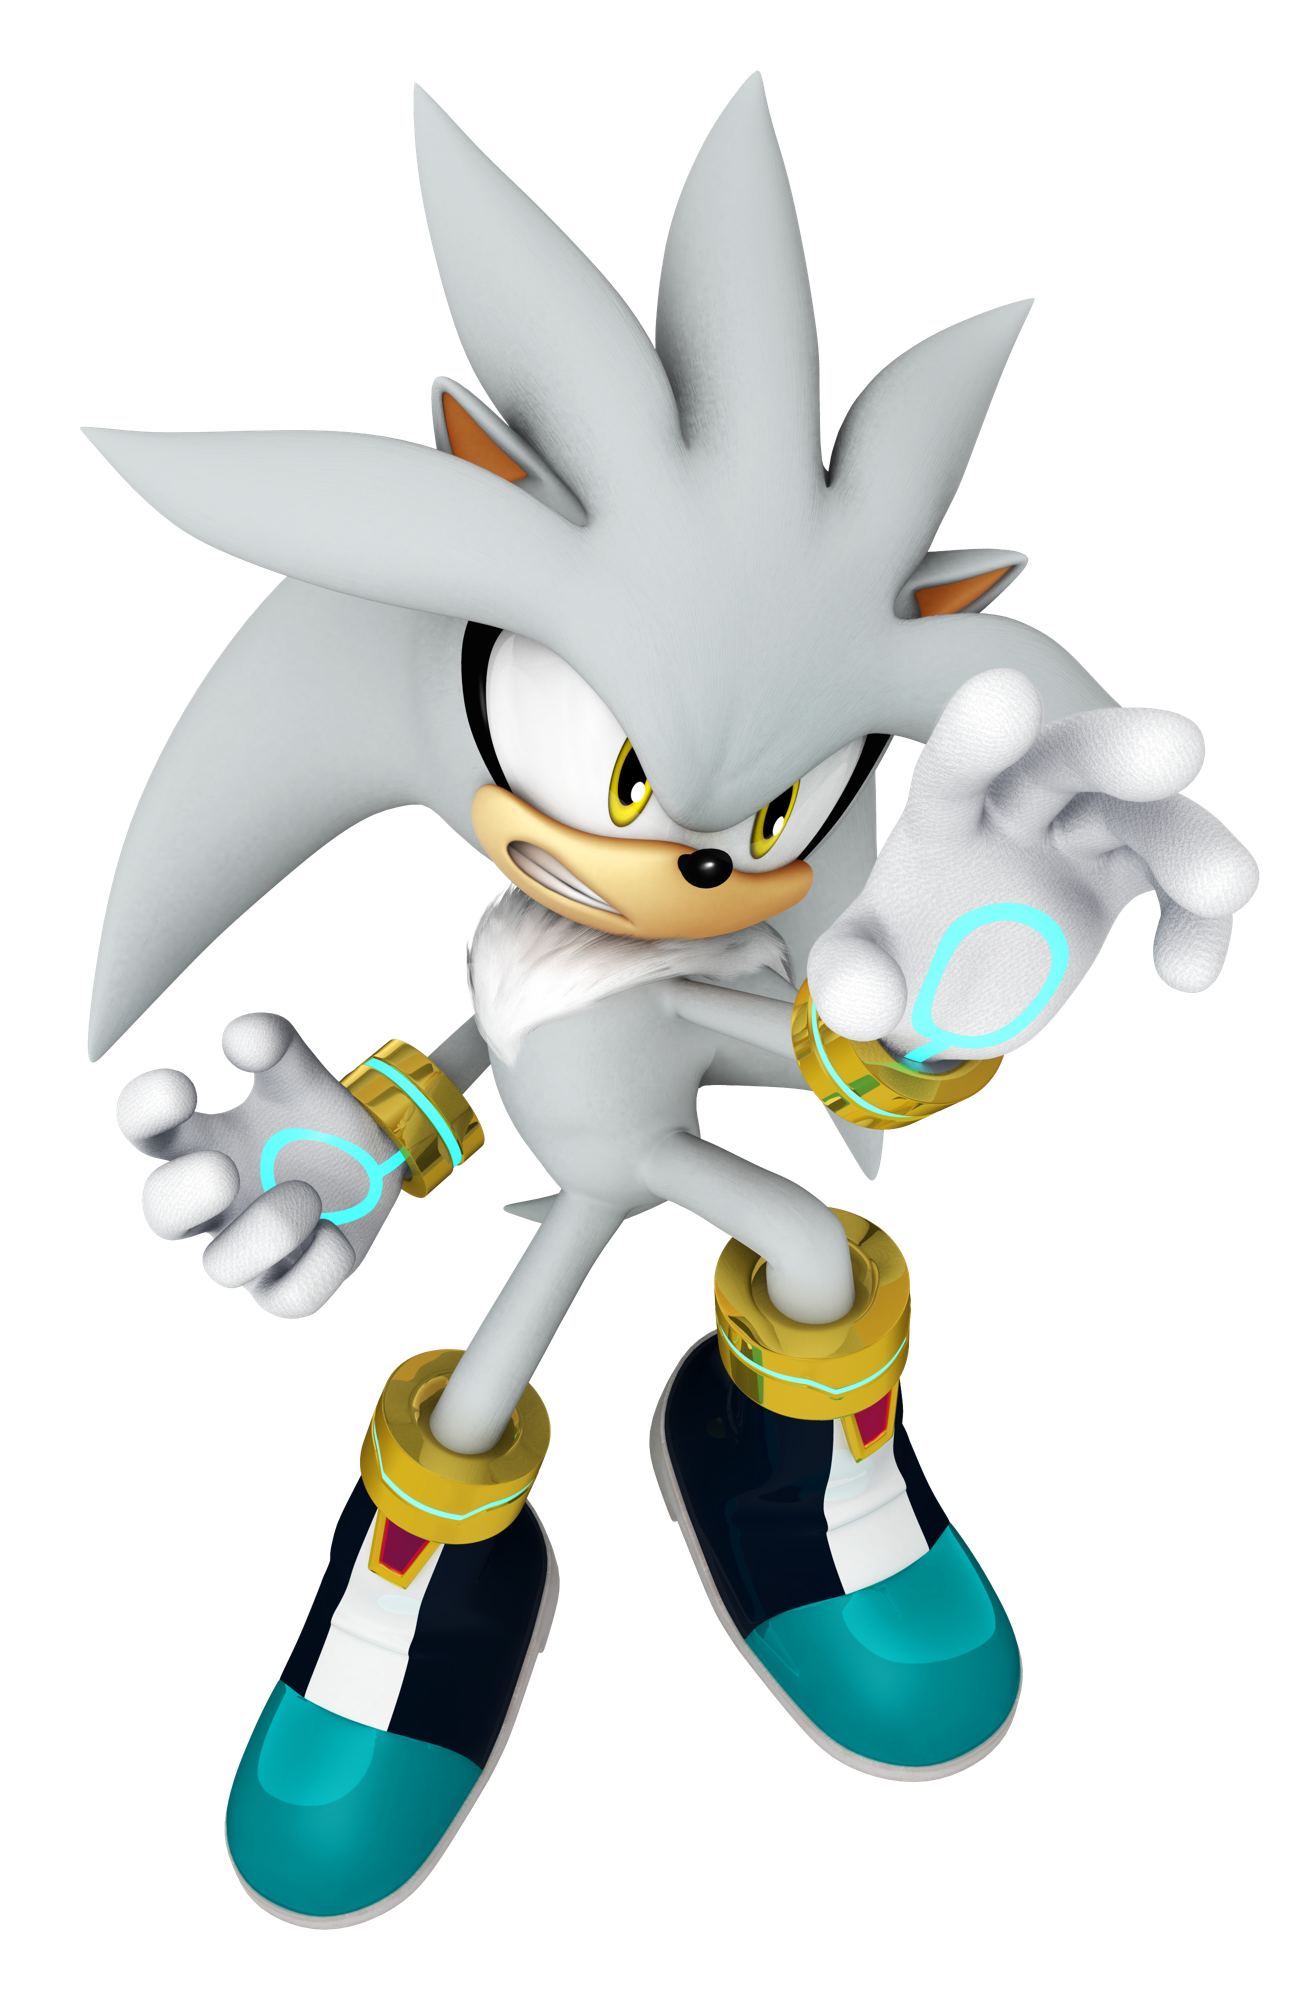 Olympics clipart olympics flame. Silver the hedgehog sonic